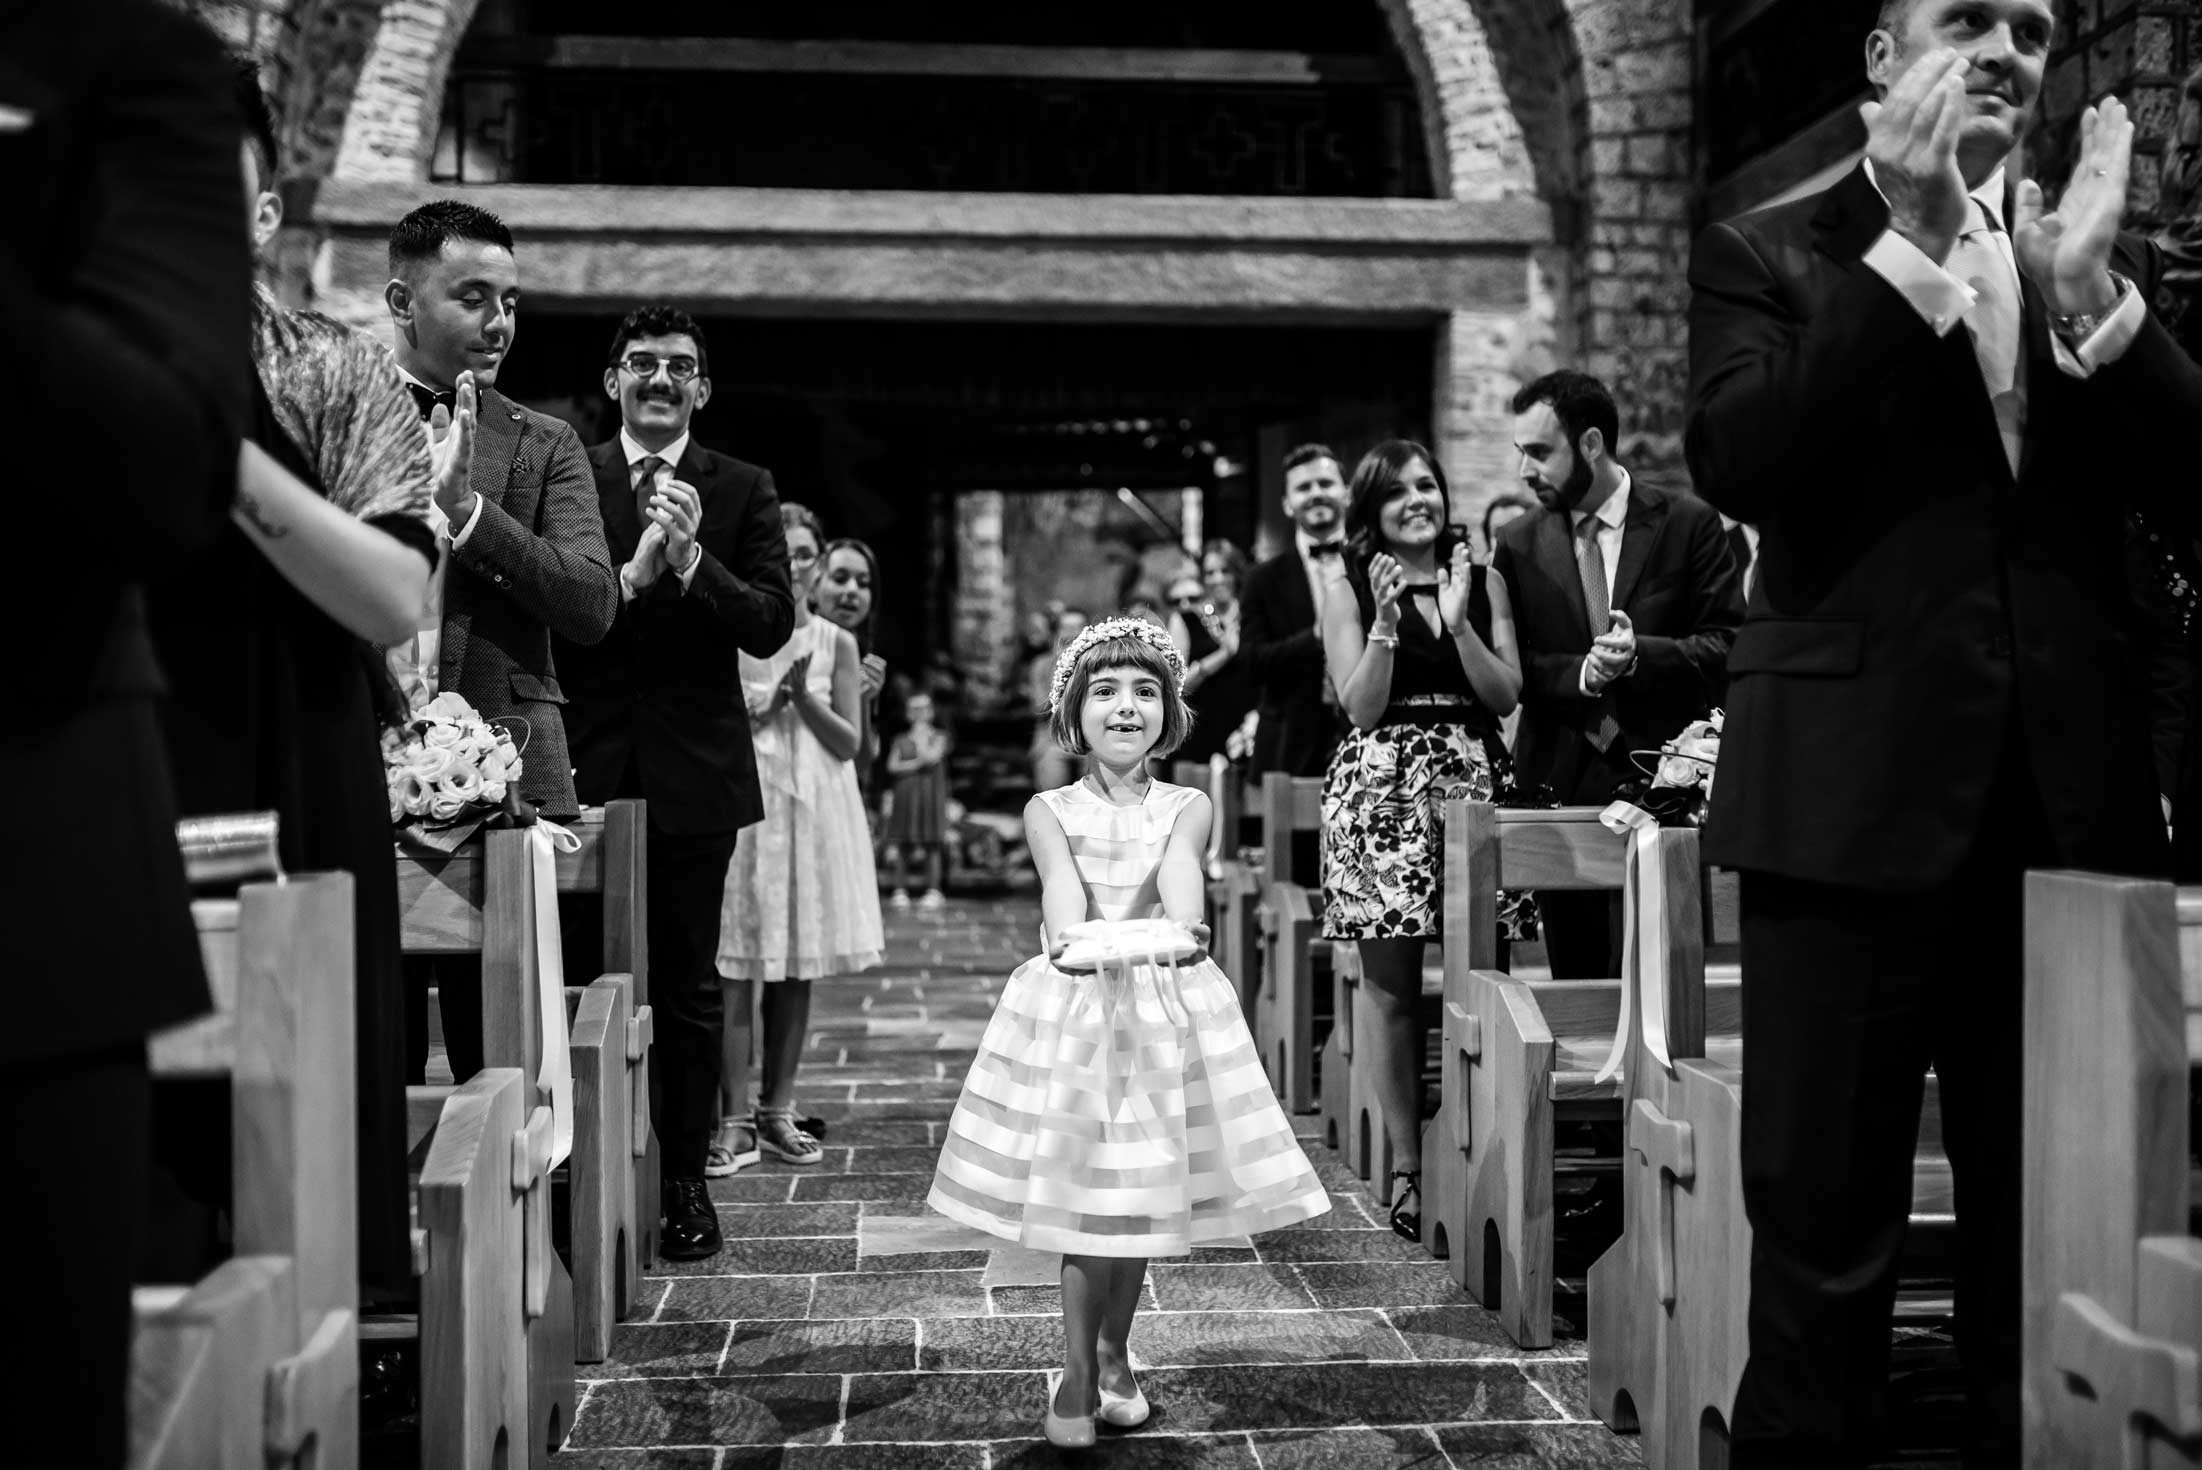 Wedding-Photographer-in-Italy-Reportage-Wedding-Photography-Ceremony